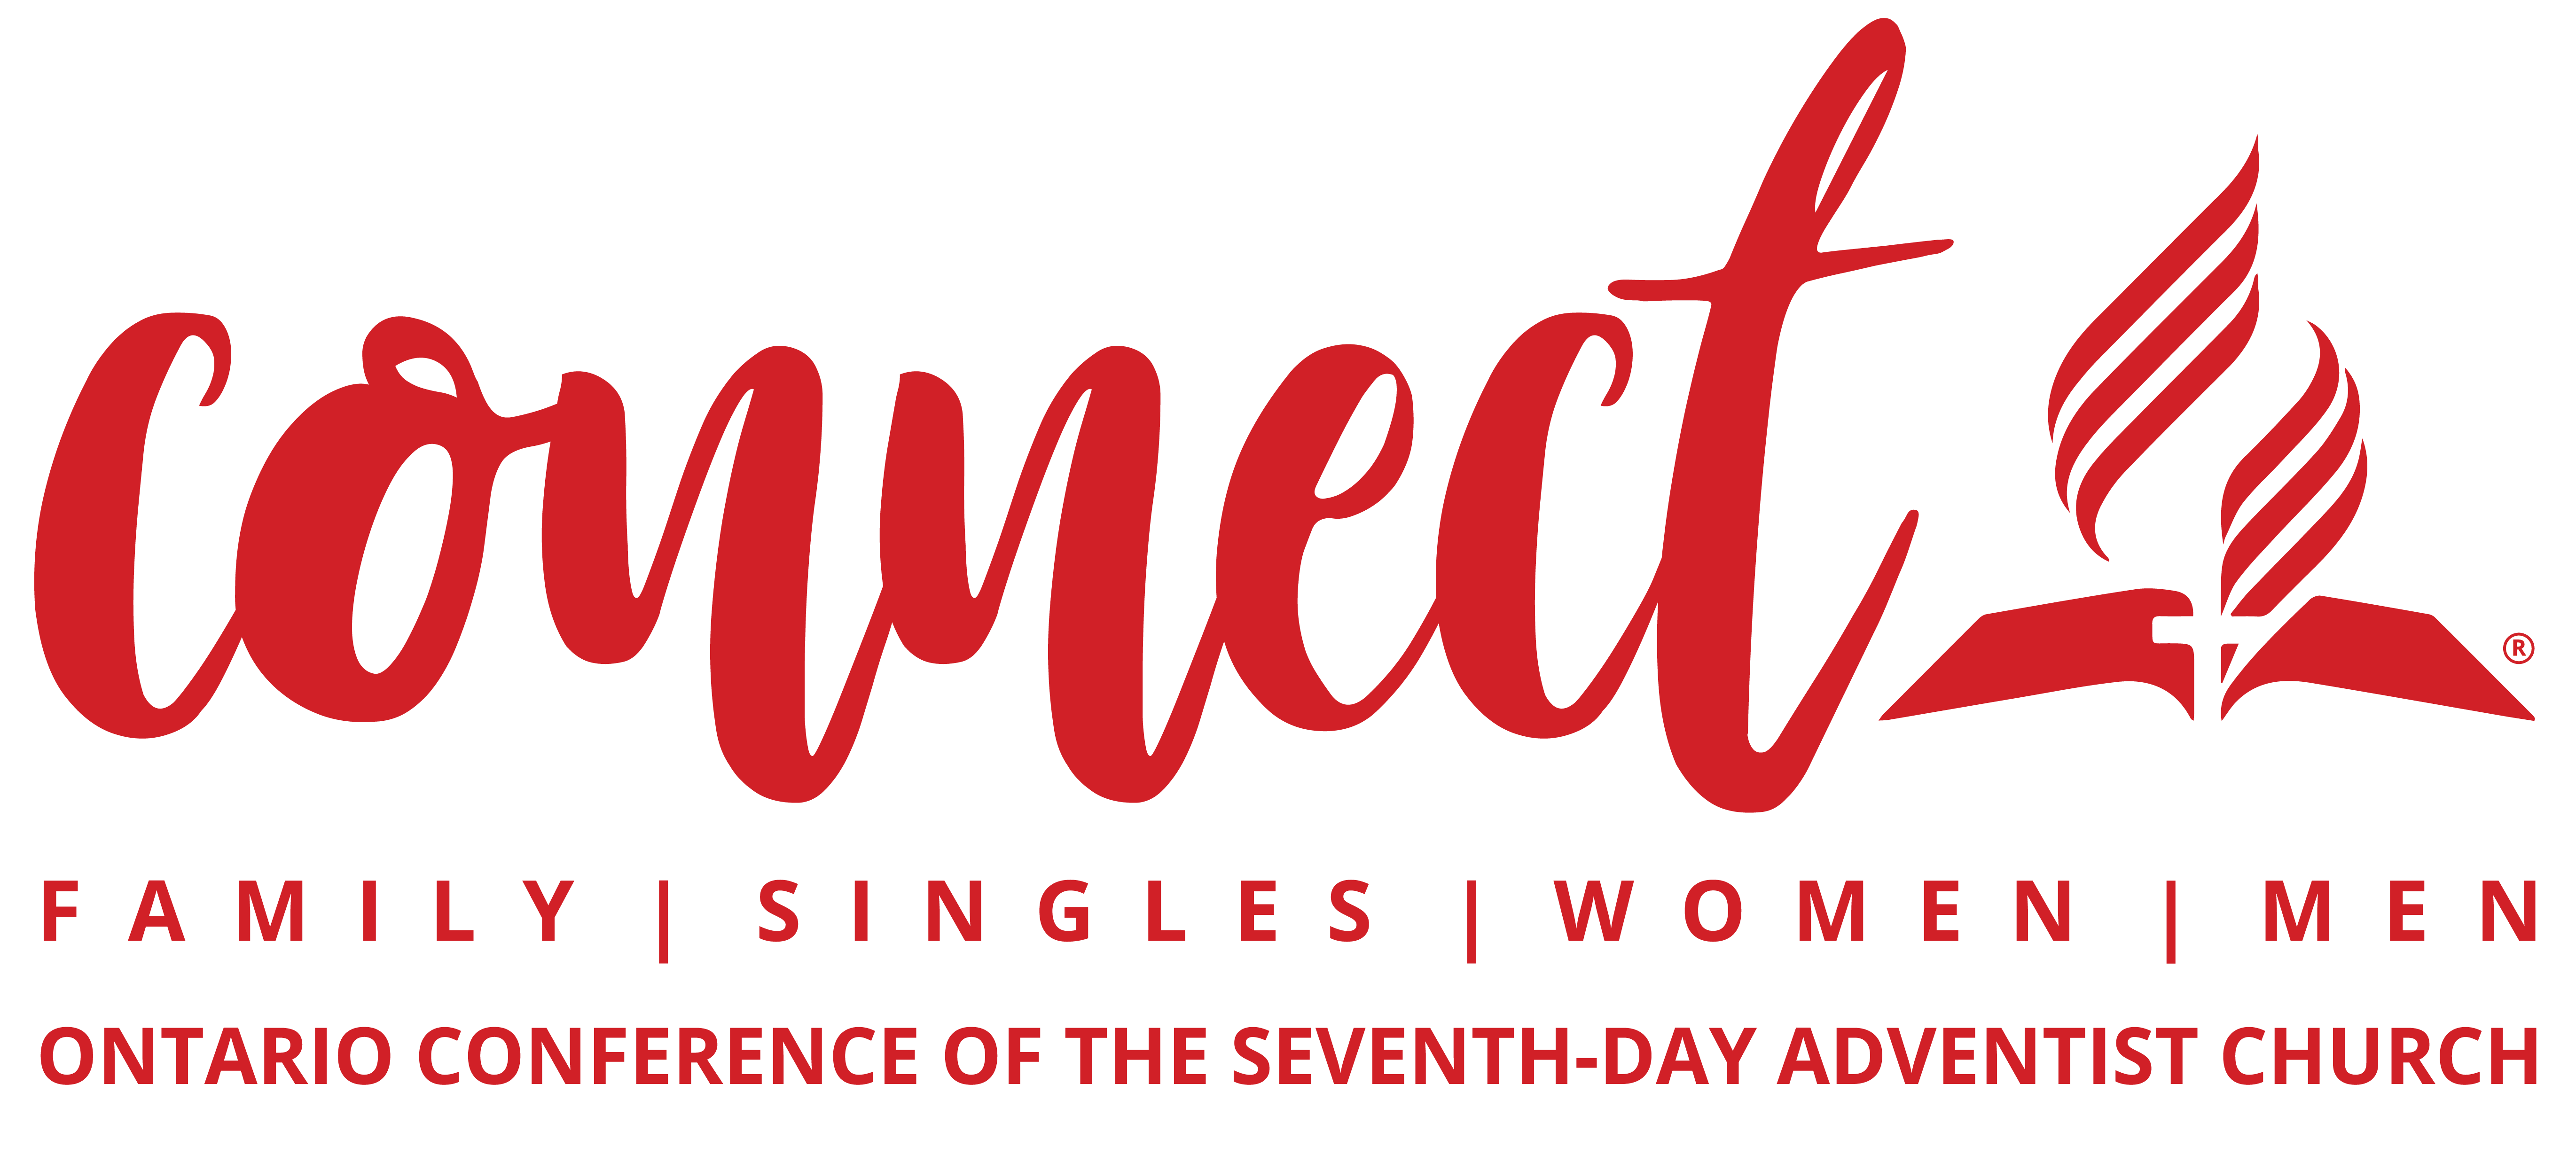 Connect MINISTRIES